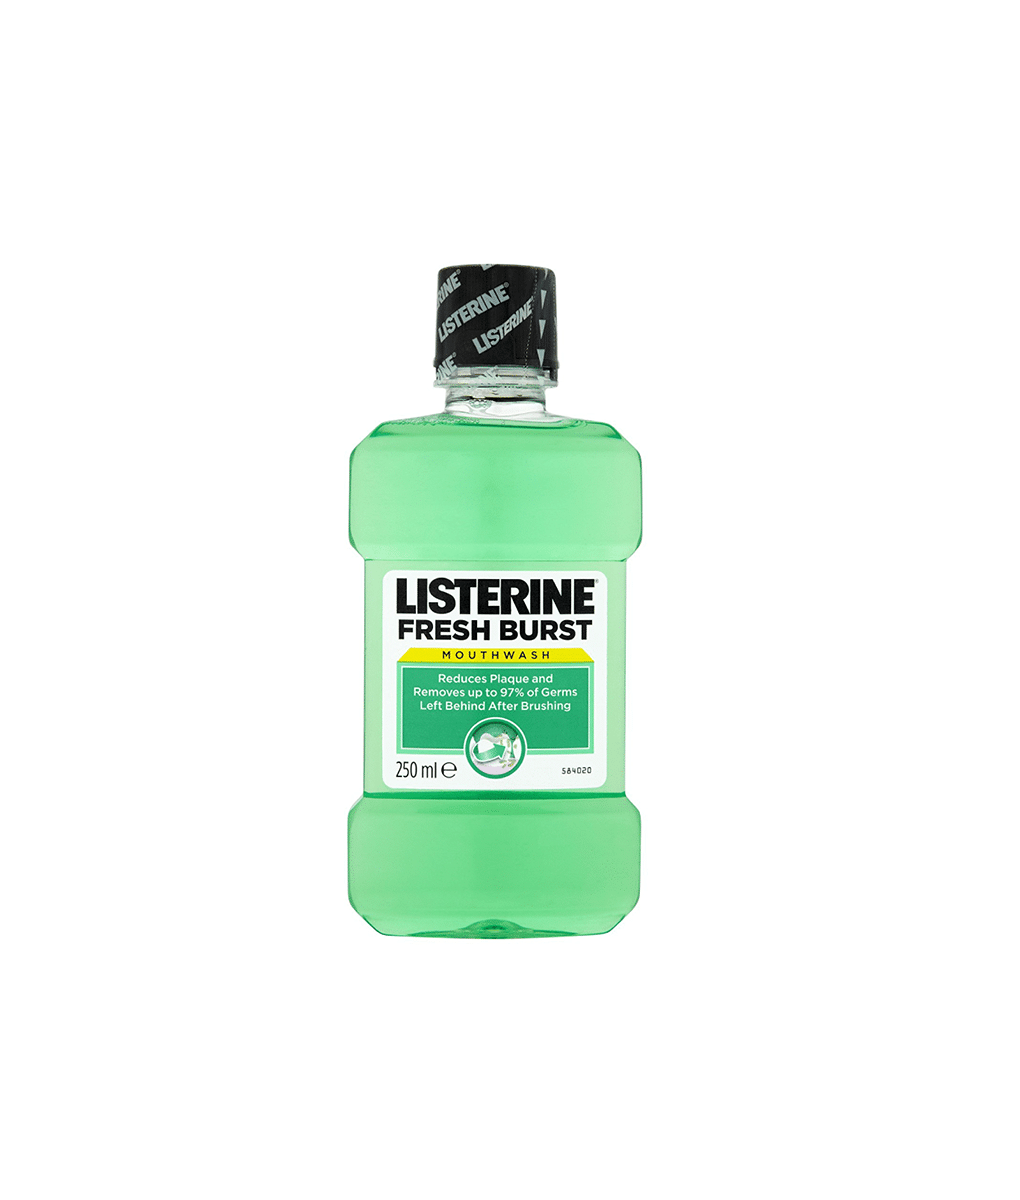 listerine fresh burst anti bacterial mouthwash 250ml kasha